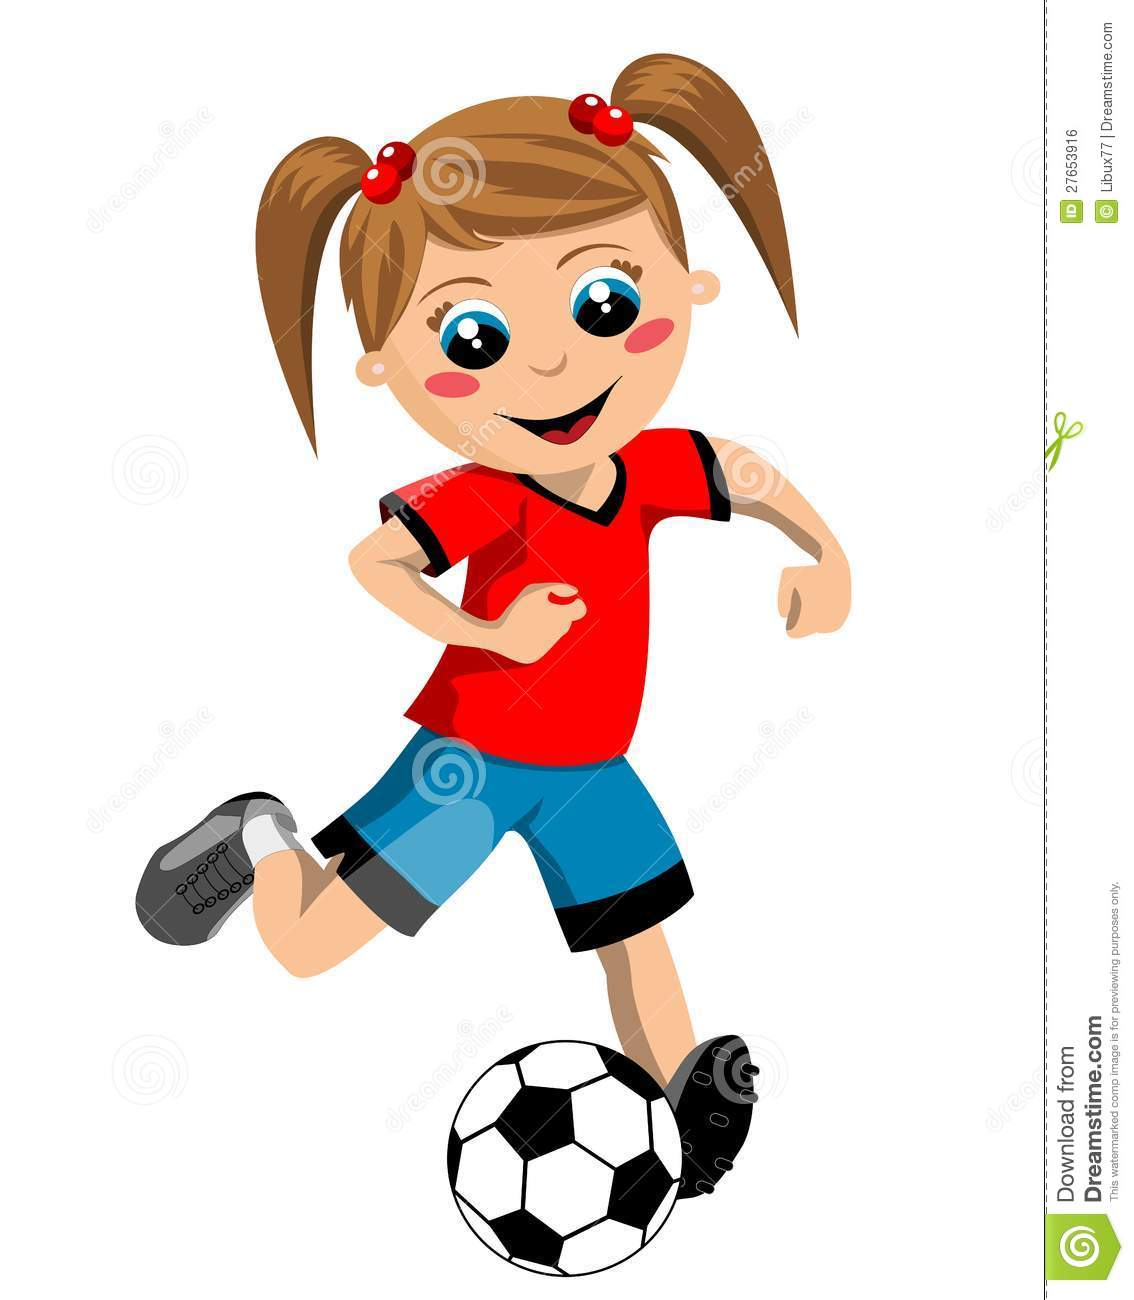 Girl playing soccer clipart 5 » Clipart Station.